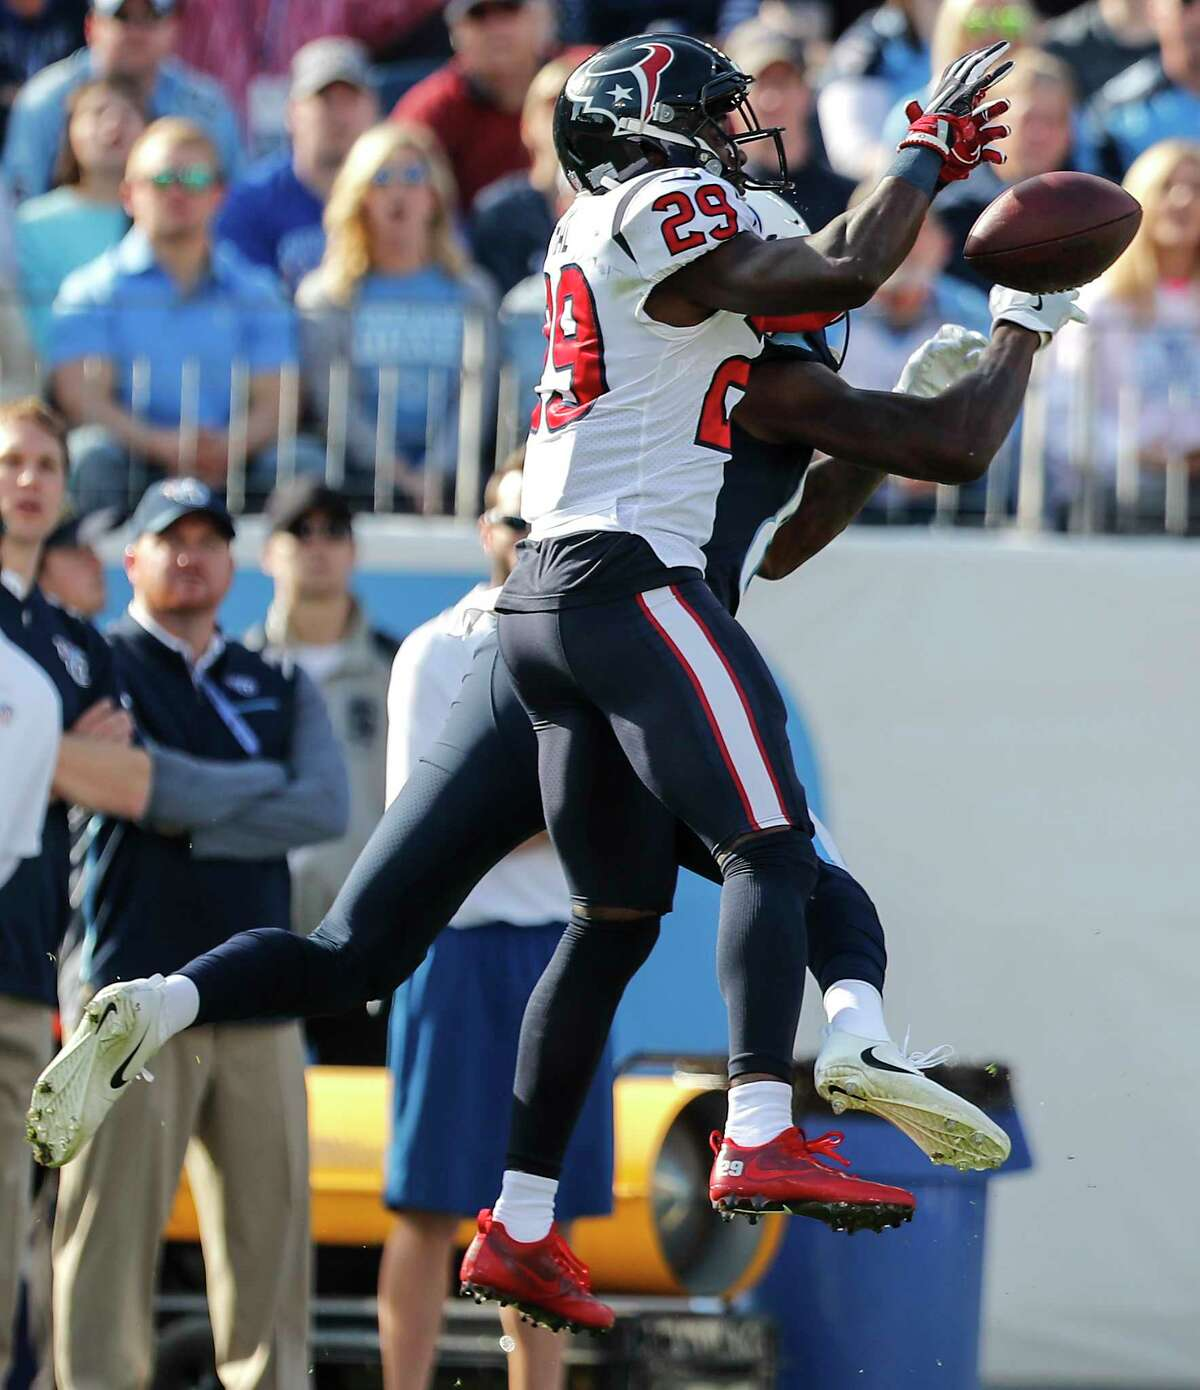 Houston Texans free safety Andre Hal (29) breaks up a pass intended for Tennessee Titans wide receiver Corey Davis (84) during the second quarter of an NFL football game at Nissan Stadium on Sunday, Dec. 3, 2017, in Nashville.